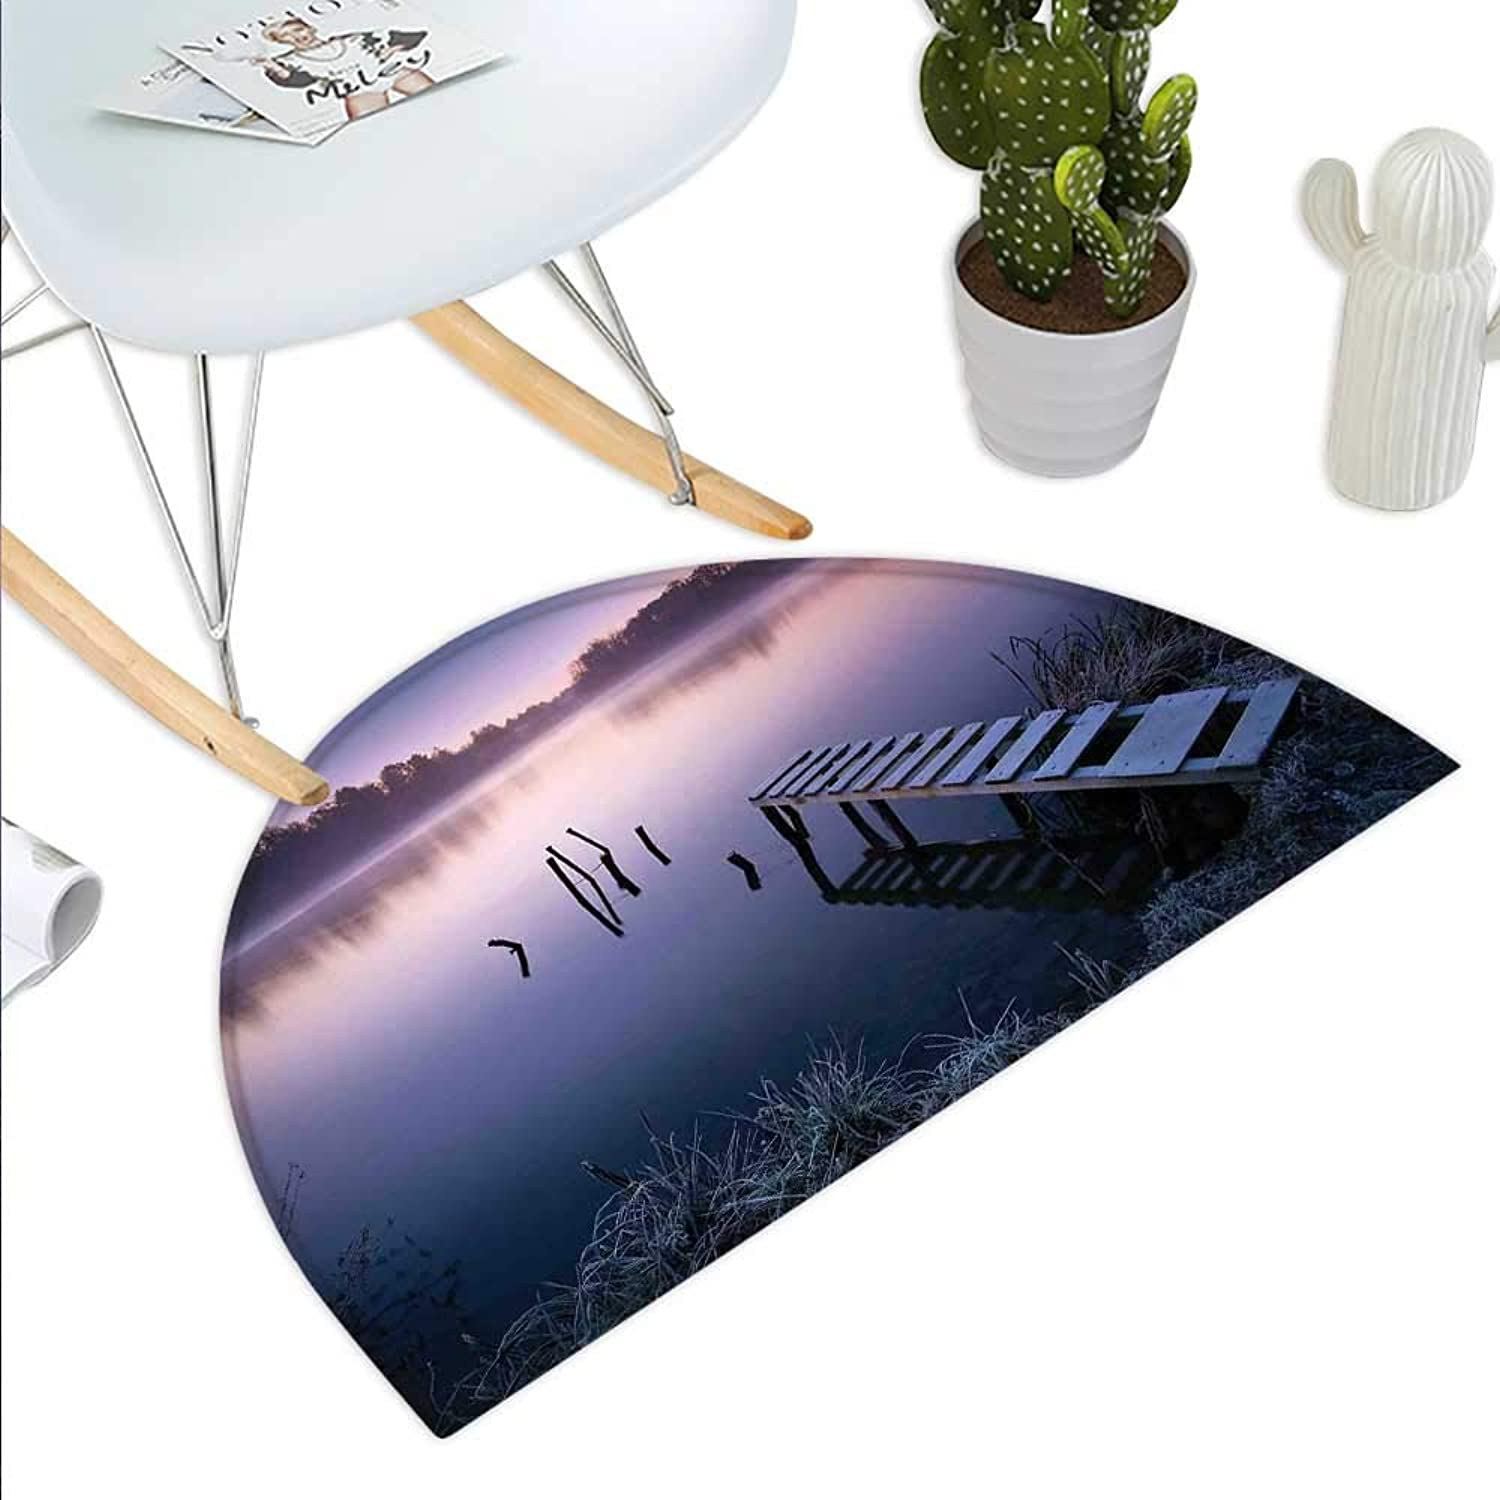 Seascape Semicircle Doormat Misty Lake Wooden Pier Distant Forest in Early Morning Fantasy Dreamy Halfmoon doormats H 39.3  xD 59  Lavender Navy bluee